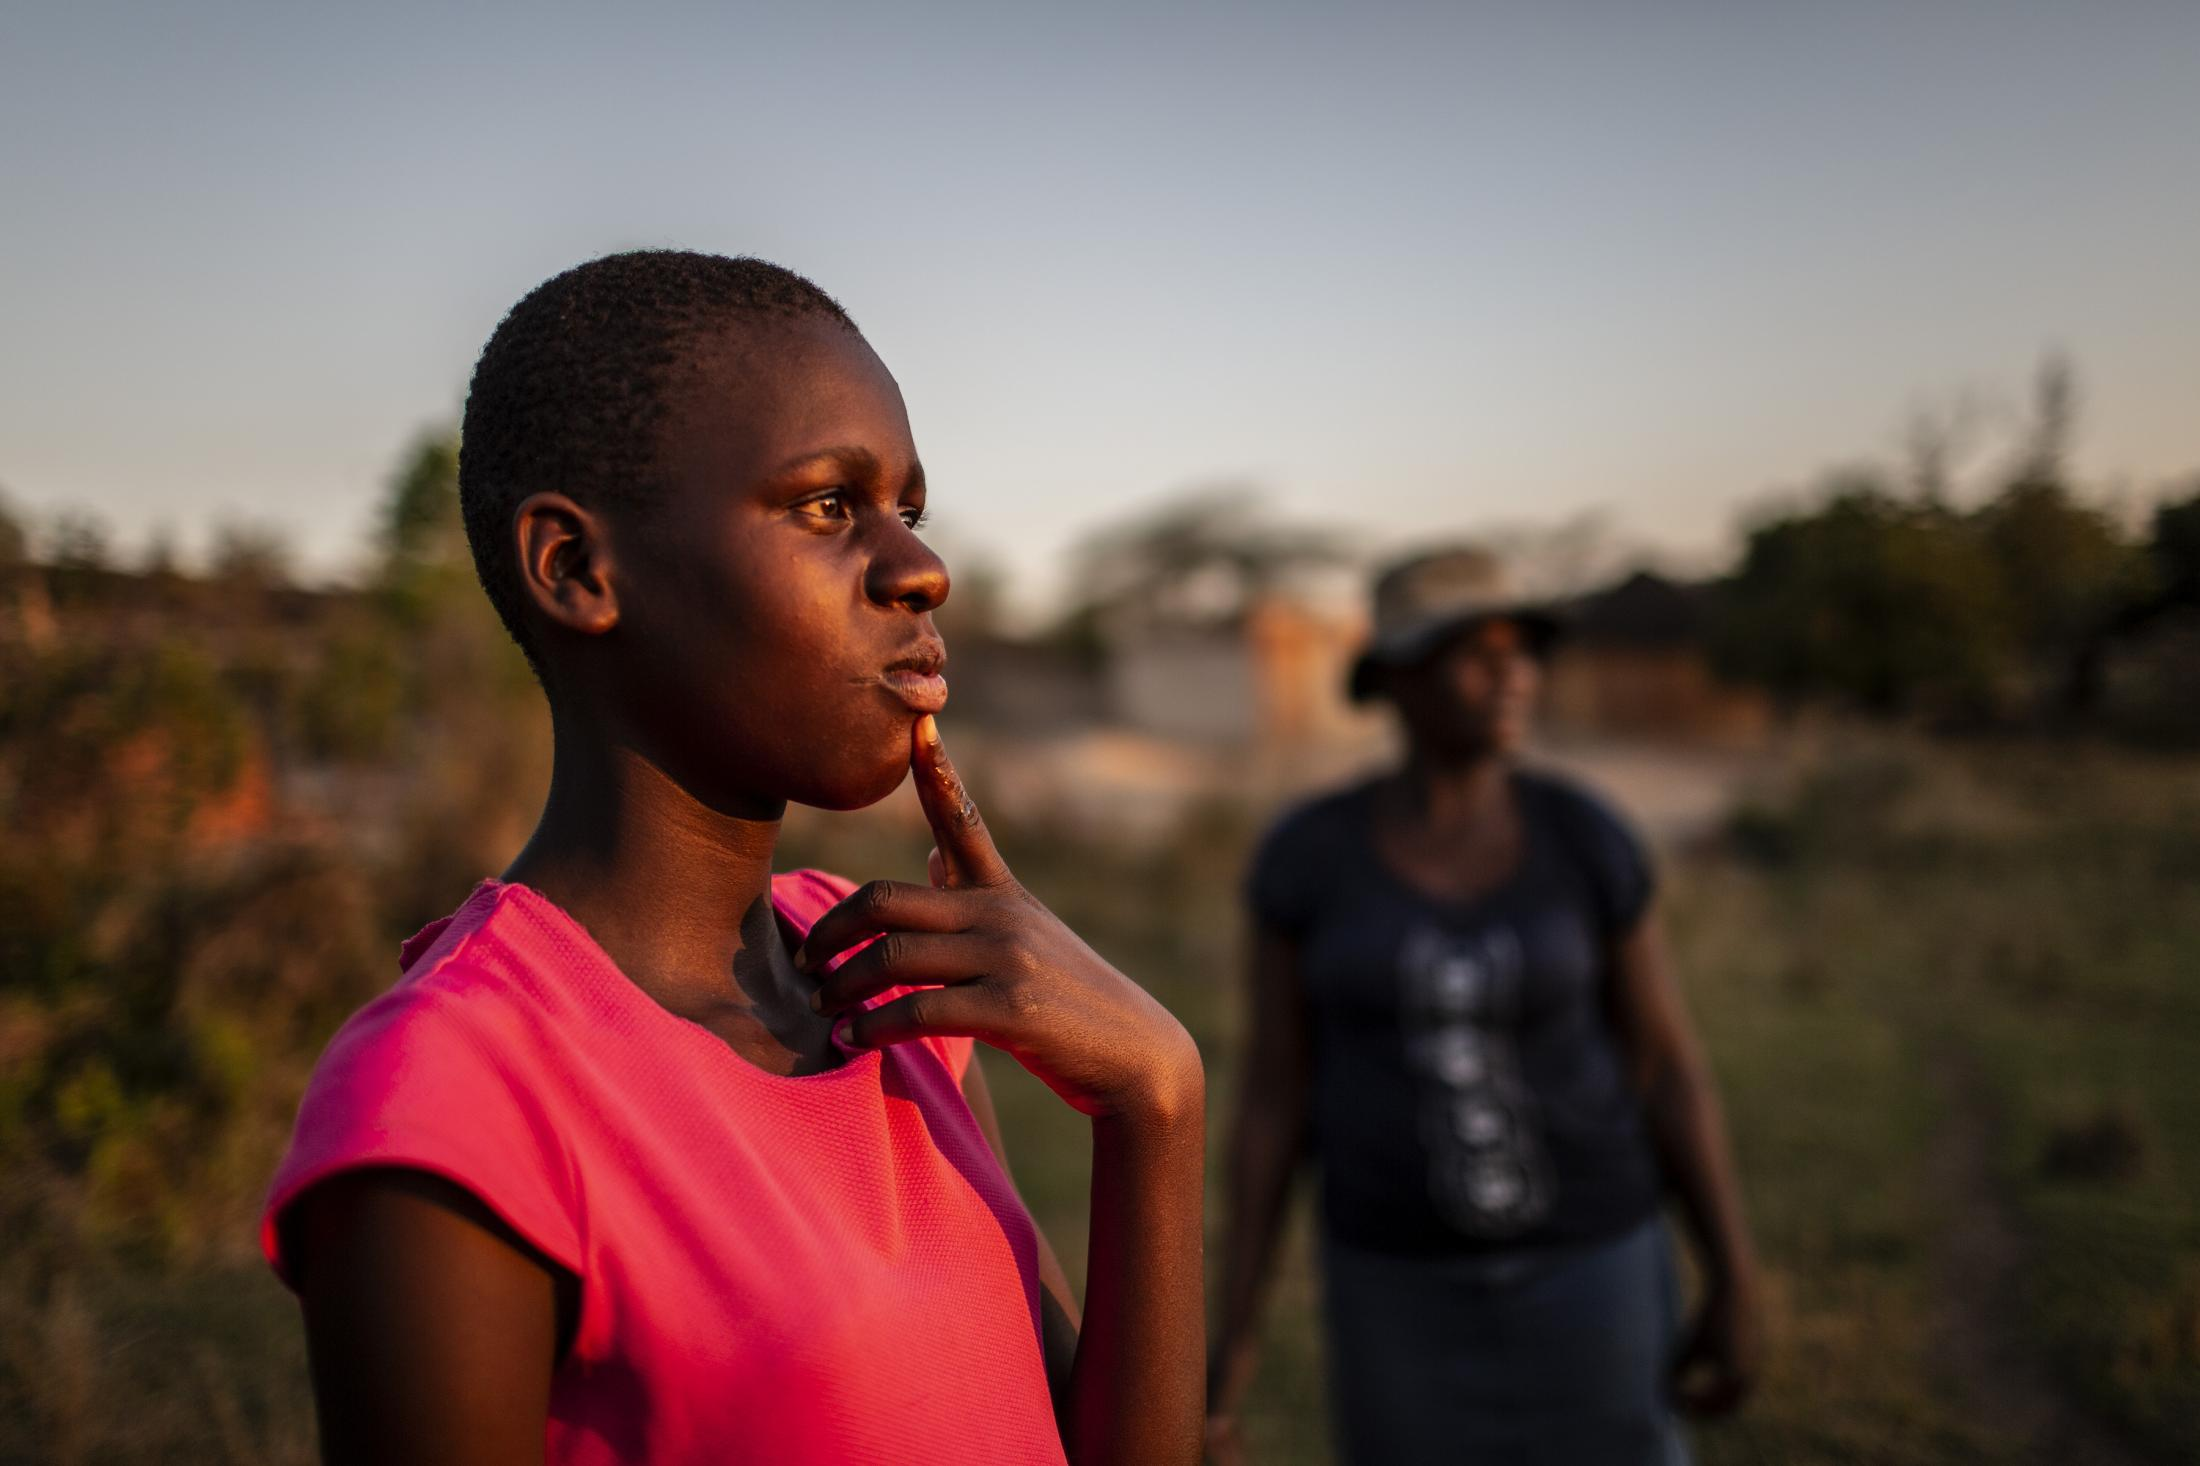 Lana Fariva (14) is pictured with her mother Tariro Chinamo (43) while fetching water from a spring in Masvingo, Zimbabwe on October 07, 2019. The family has no electricity or water at home and have to walk for over a km to a spring to fetch water everyday. They have no choice but to use this for drinking and cooking as well, so it will be boiled.